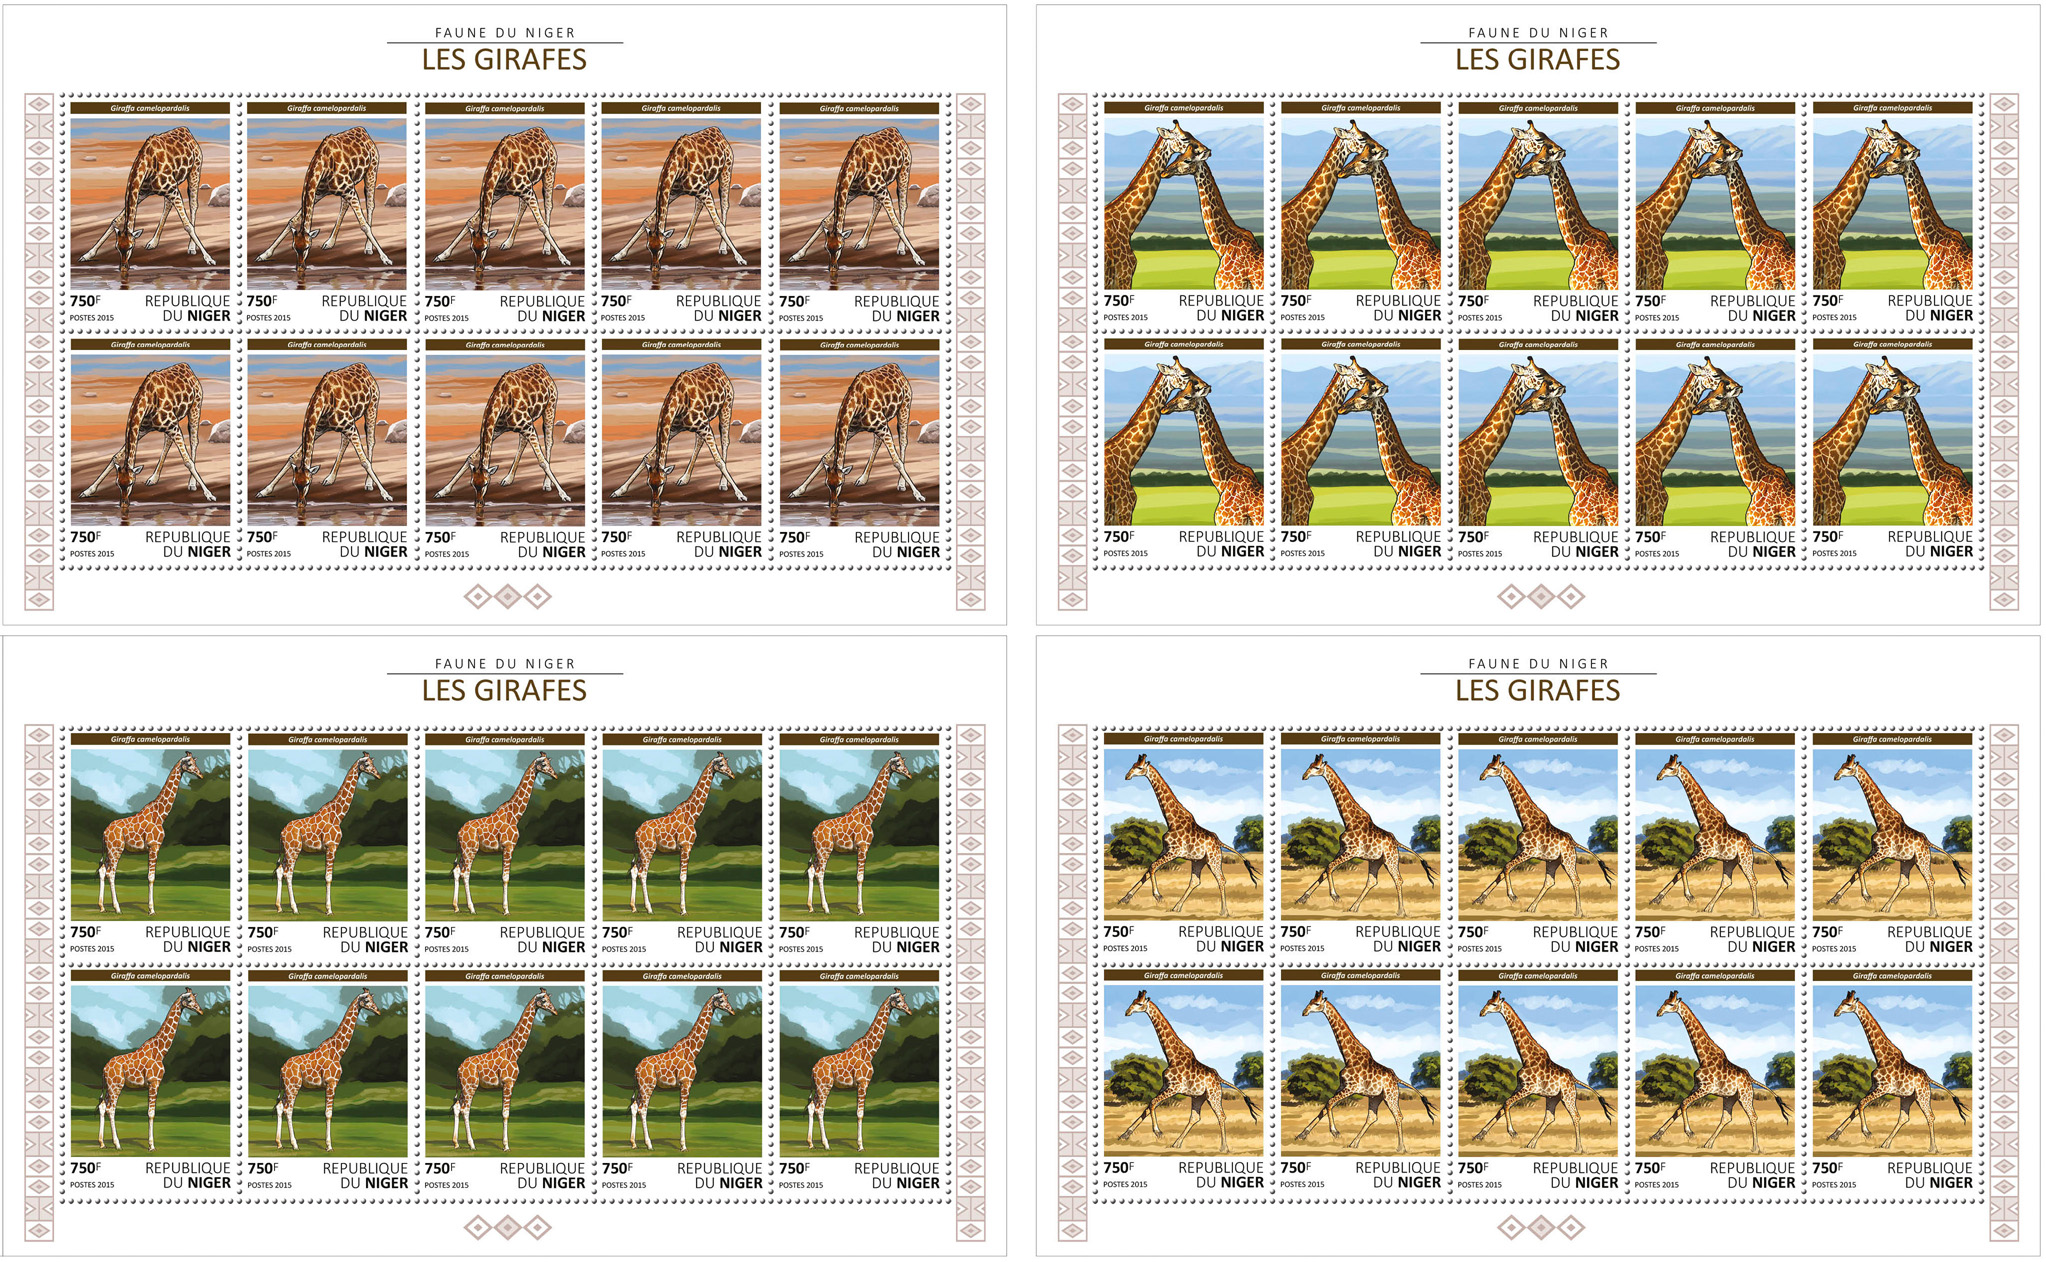 Giraffes 4x10v - Issue of Niger postage stamps